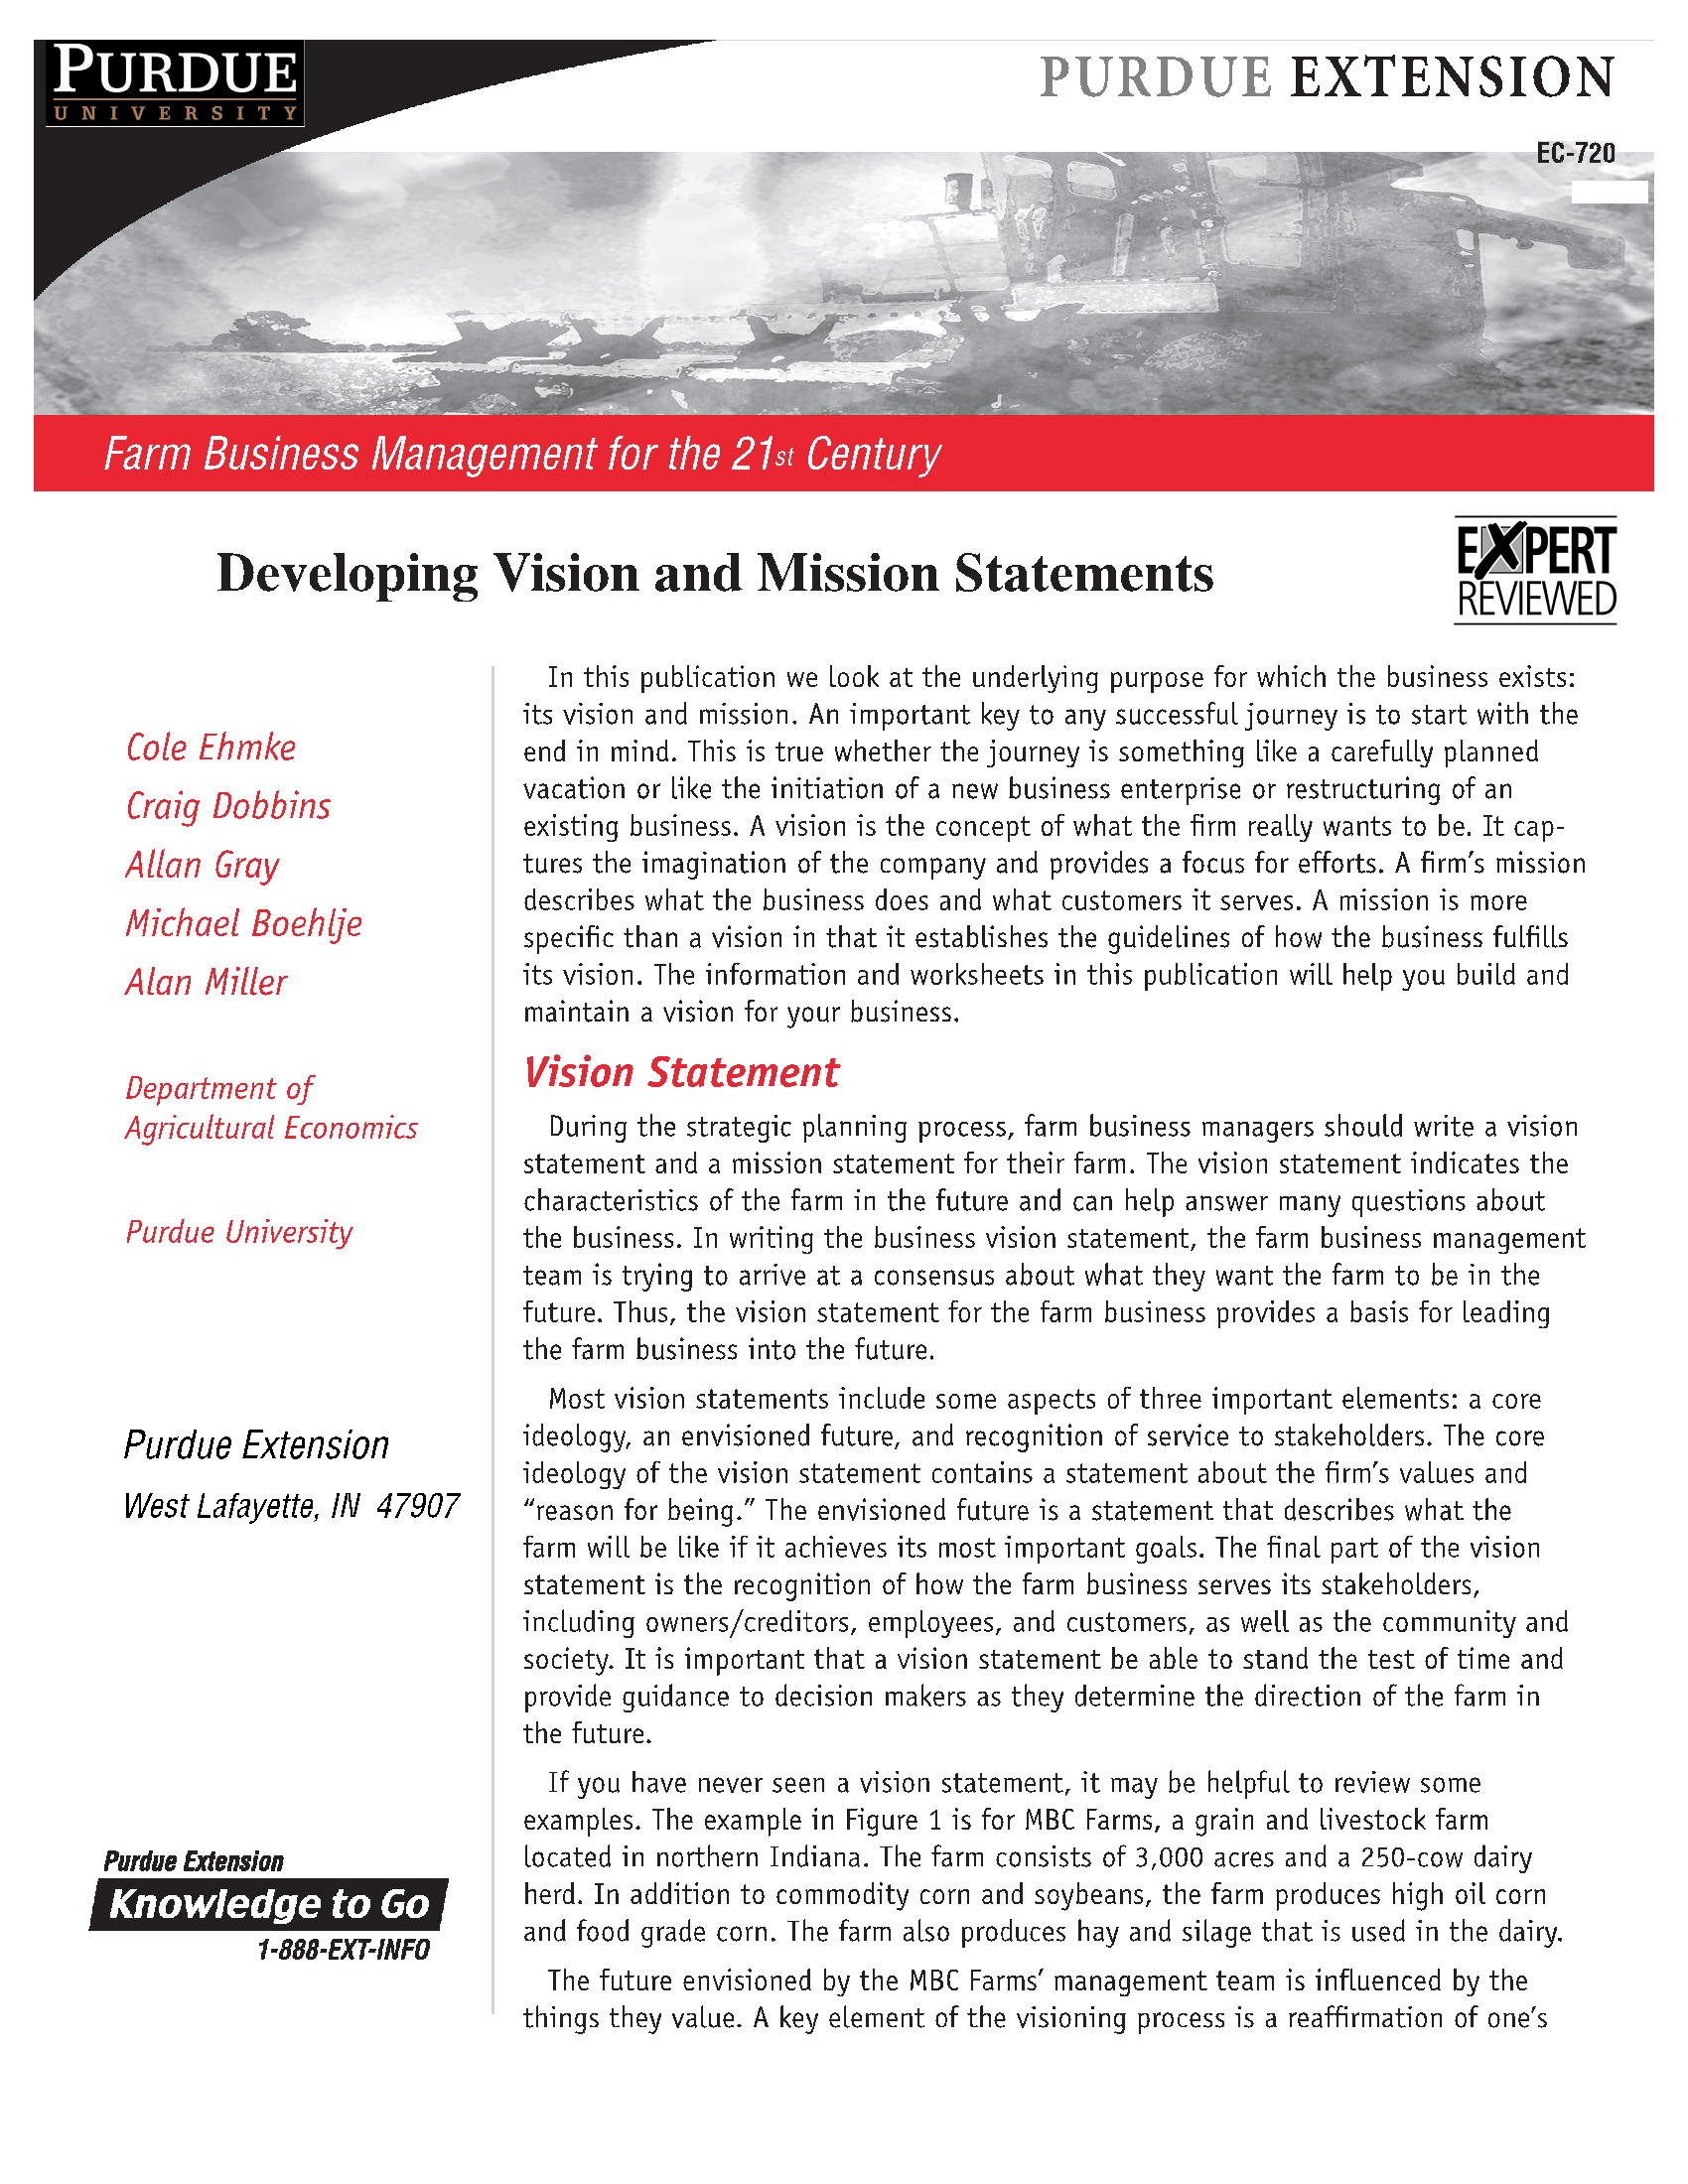 Developing Vision and Mission Statements 12